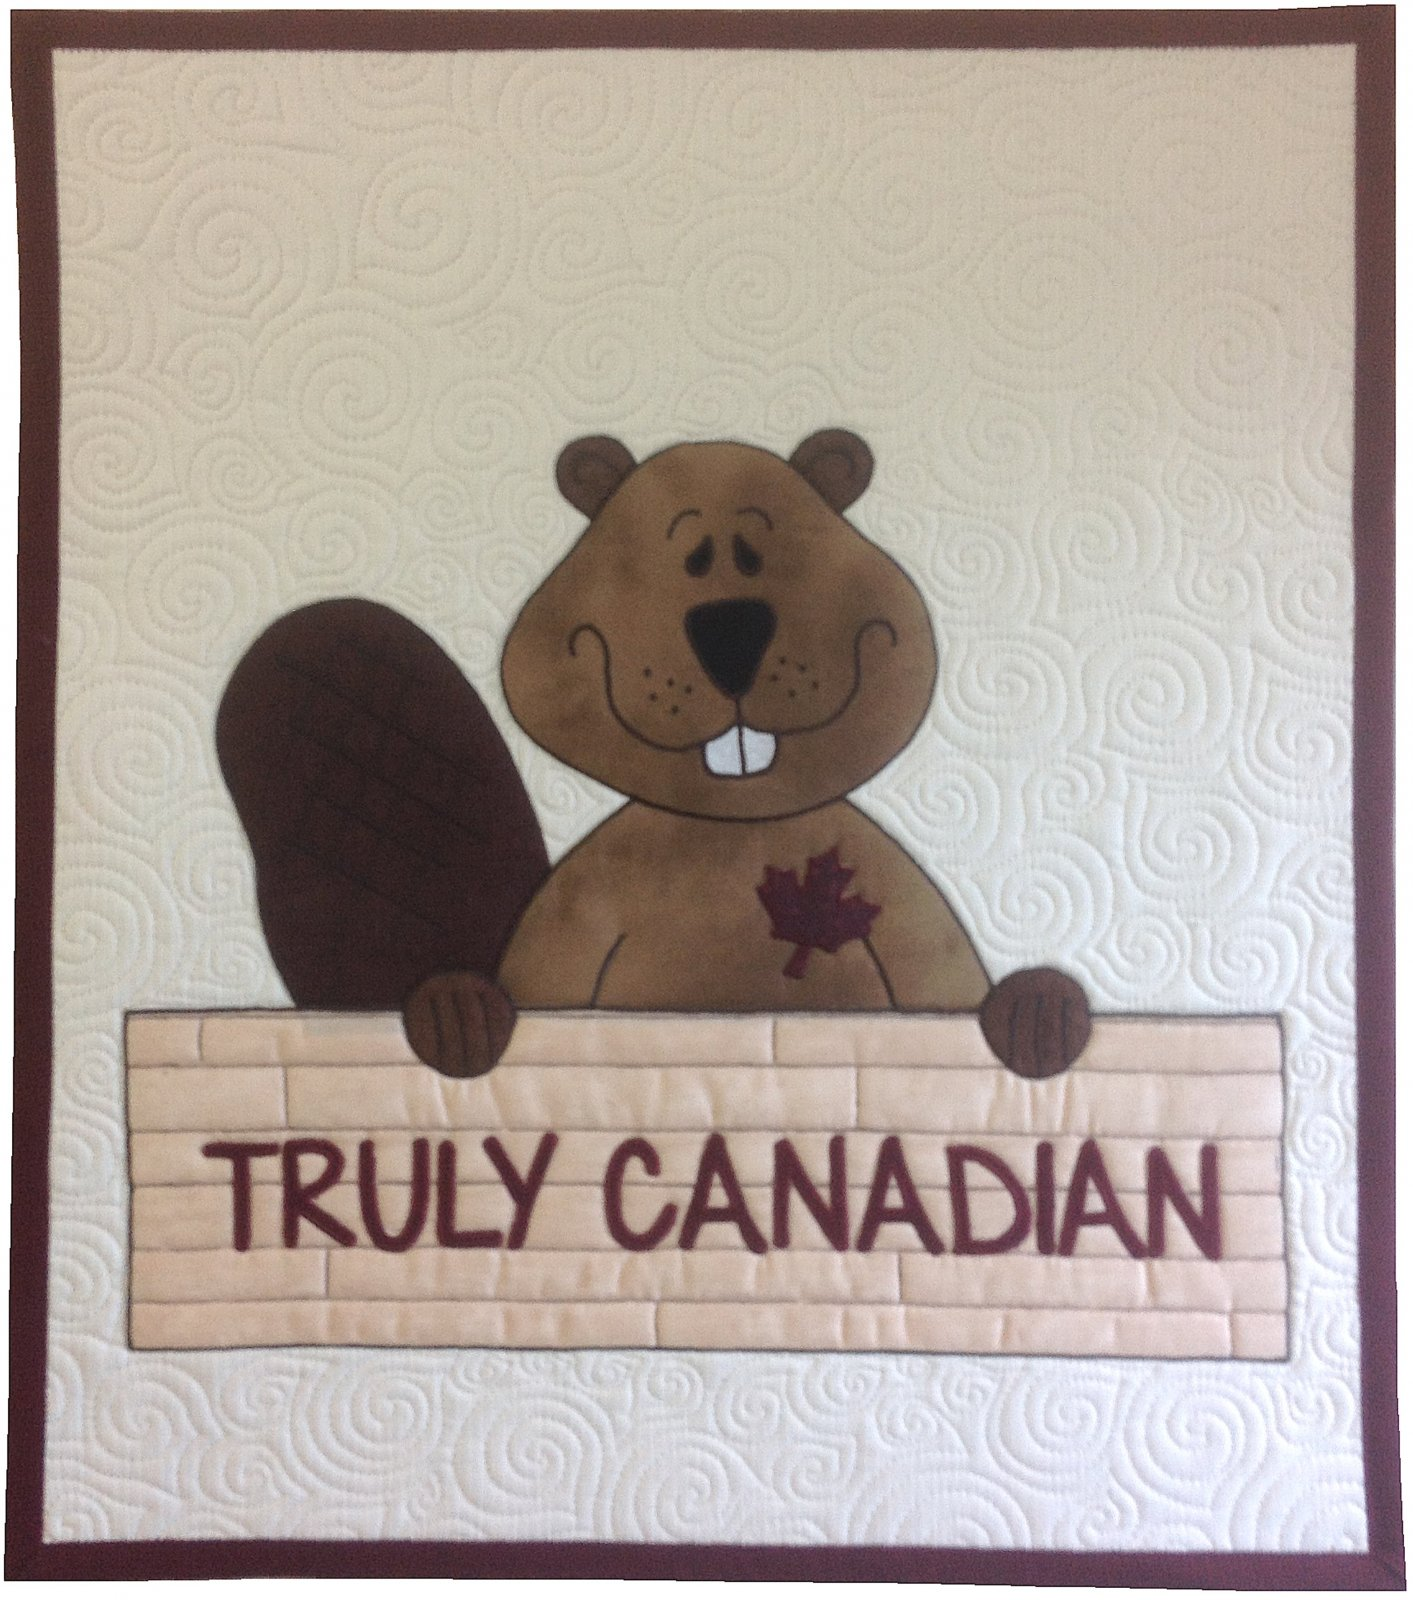 Truly Canadian - Beaver Quilt